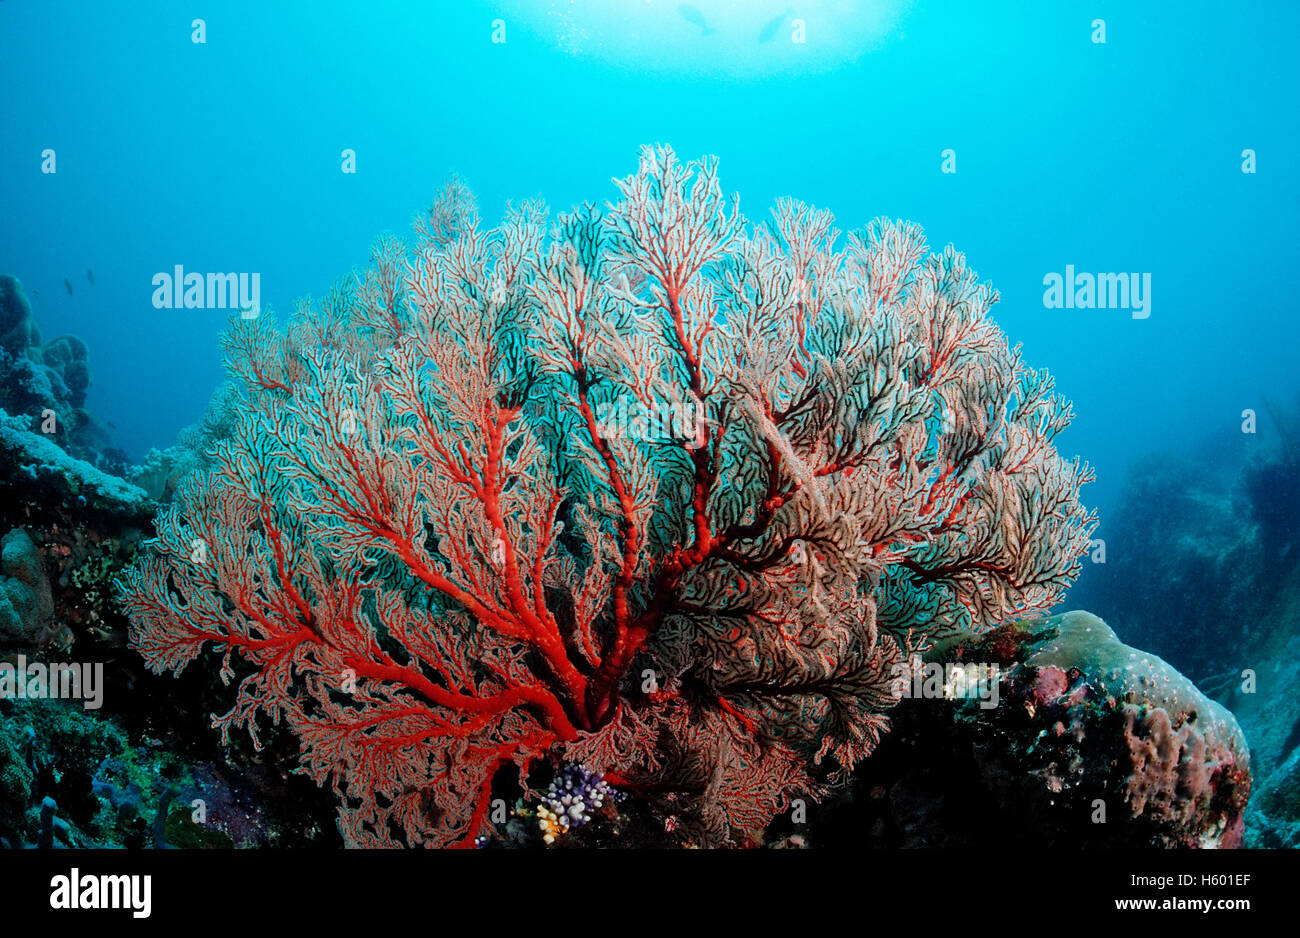 Coral reef with Sea Fan (Gorgonaria sp.), Komodo, Indo-Pacific, Indonesia, Southeast Asia Stock Photo